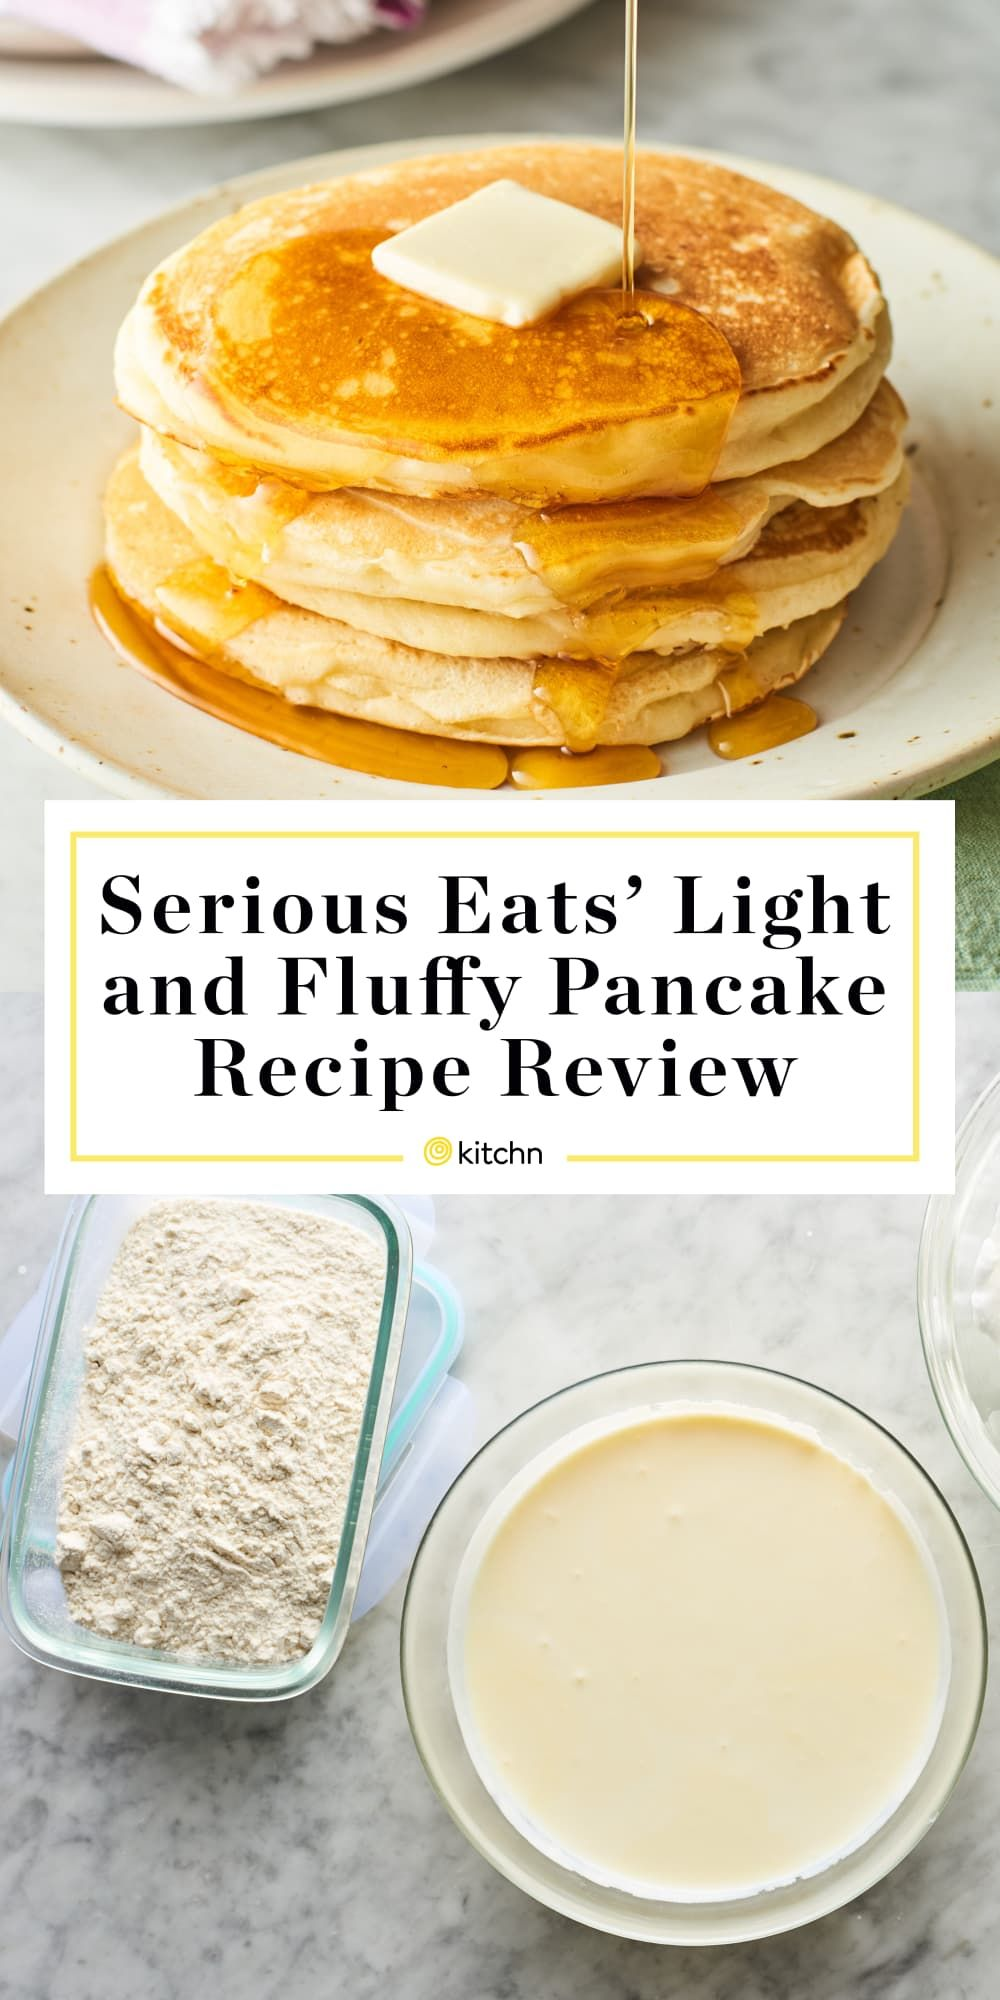 Serious Eats' Light and Fluffy Pancake Recipe Is Worth the Hype